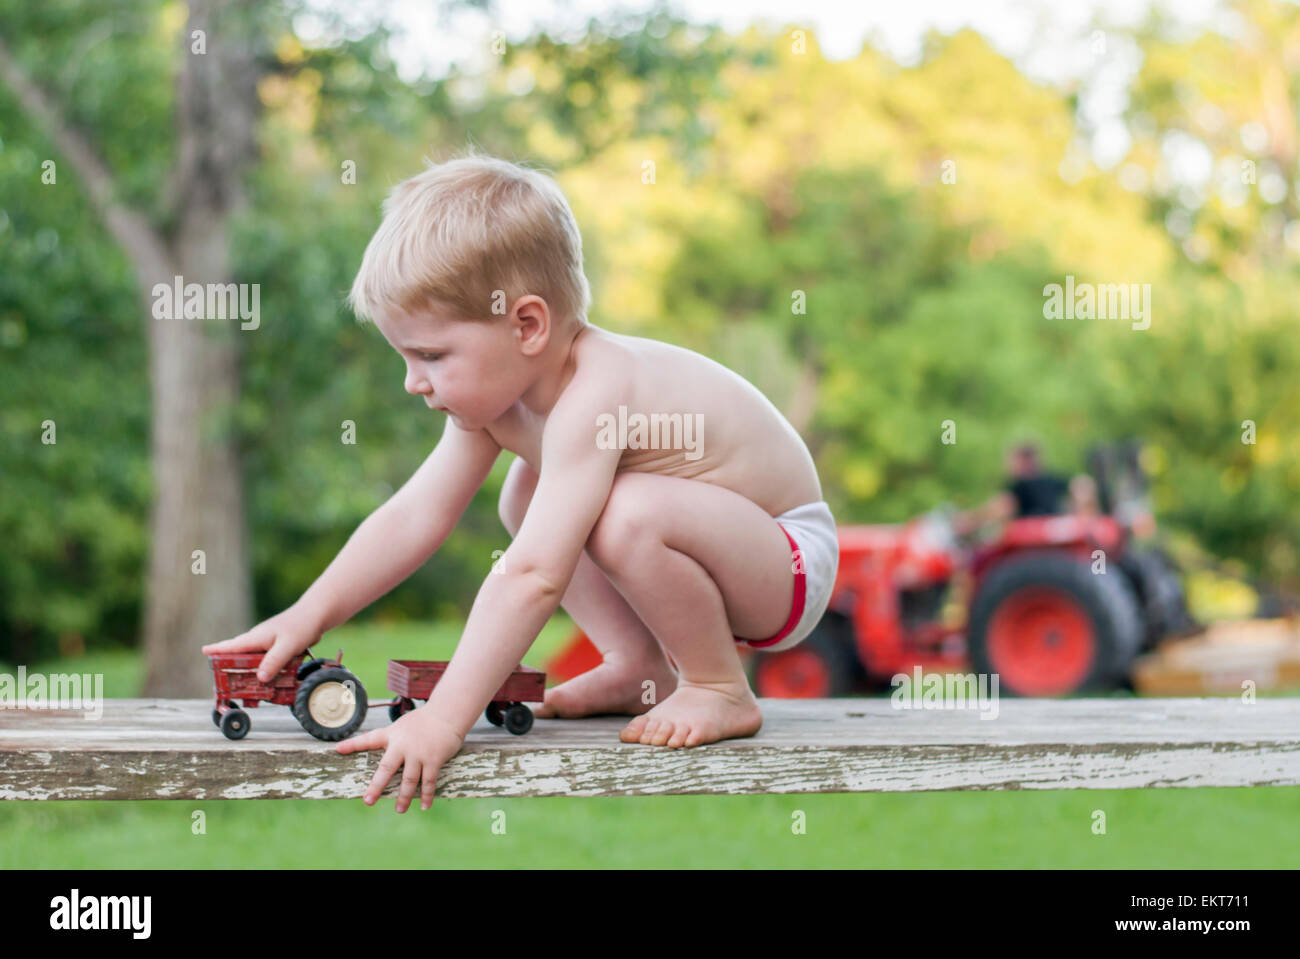 boy plays tractors farmer in background - Stock Image